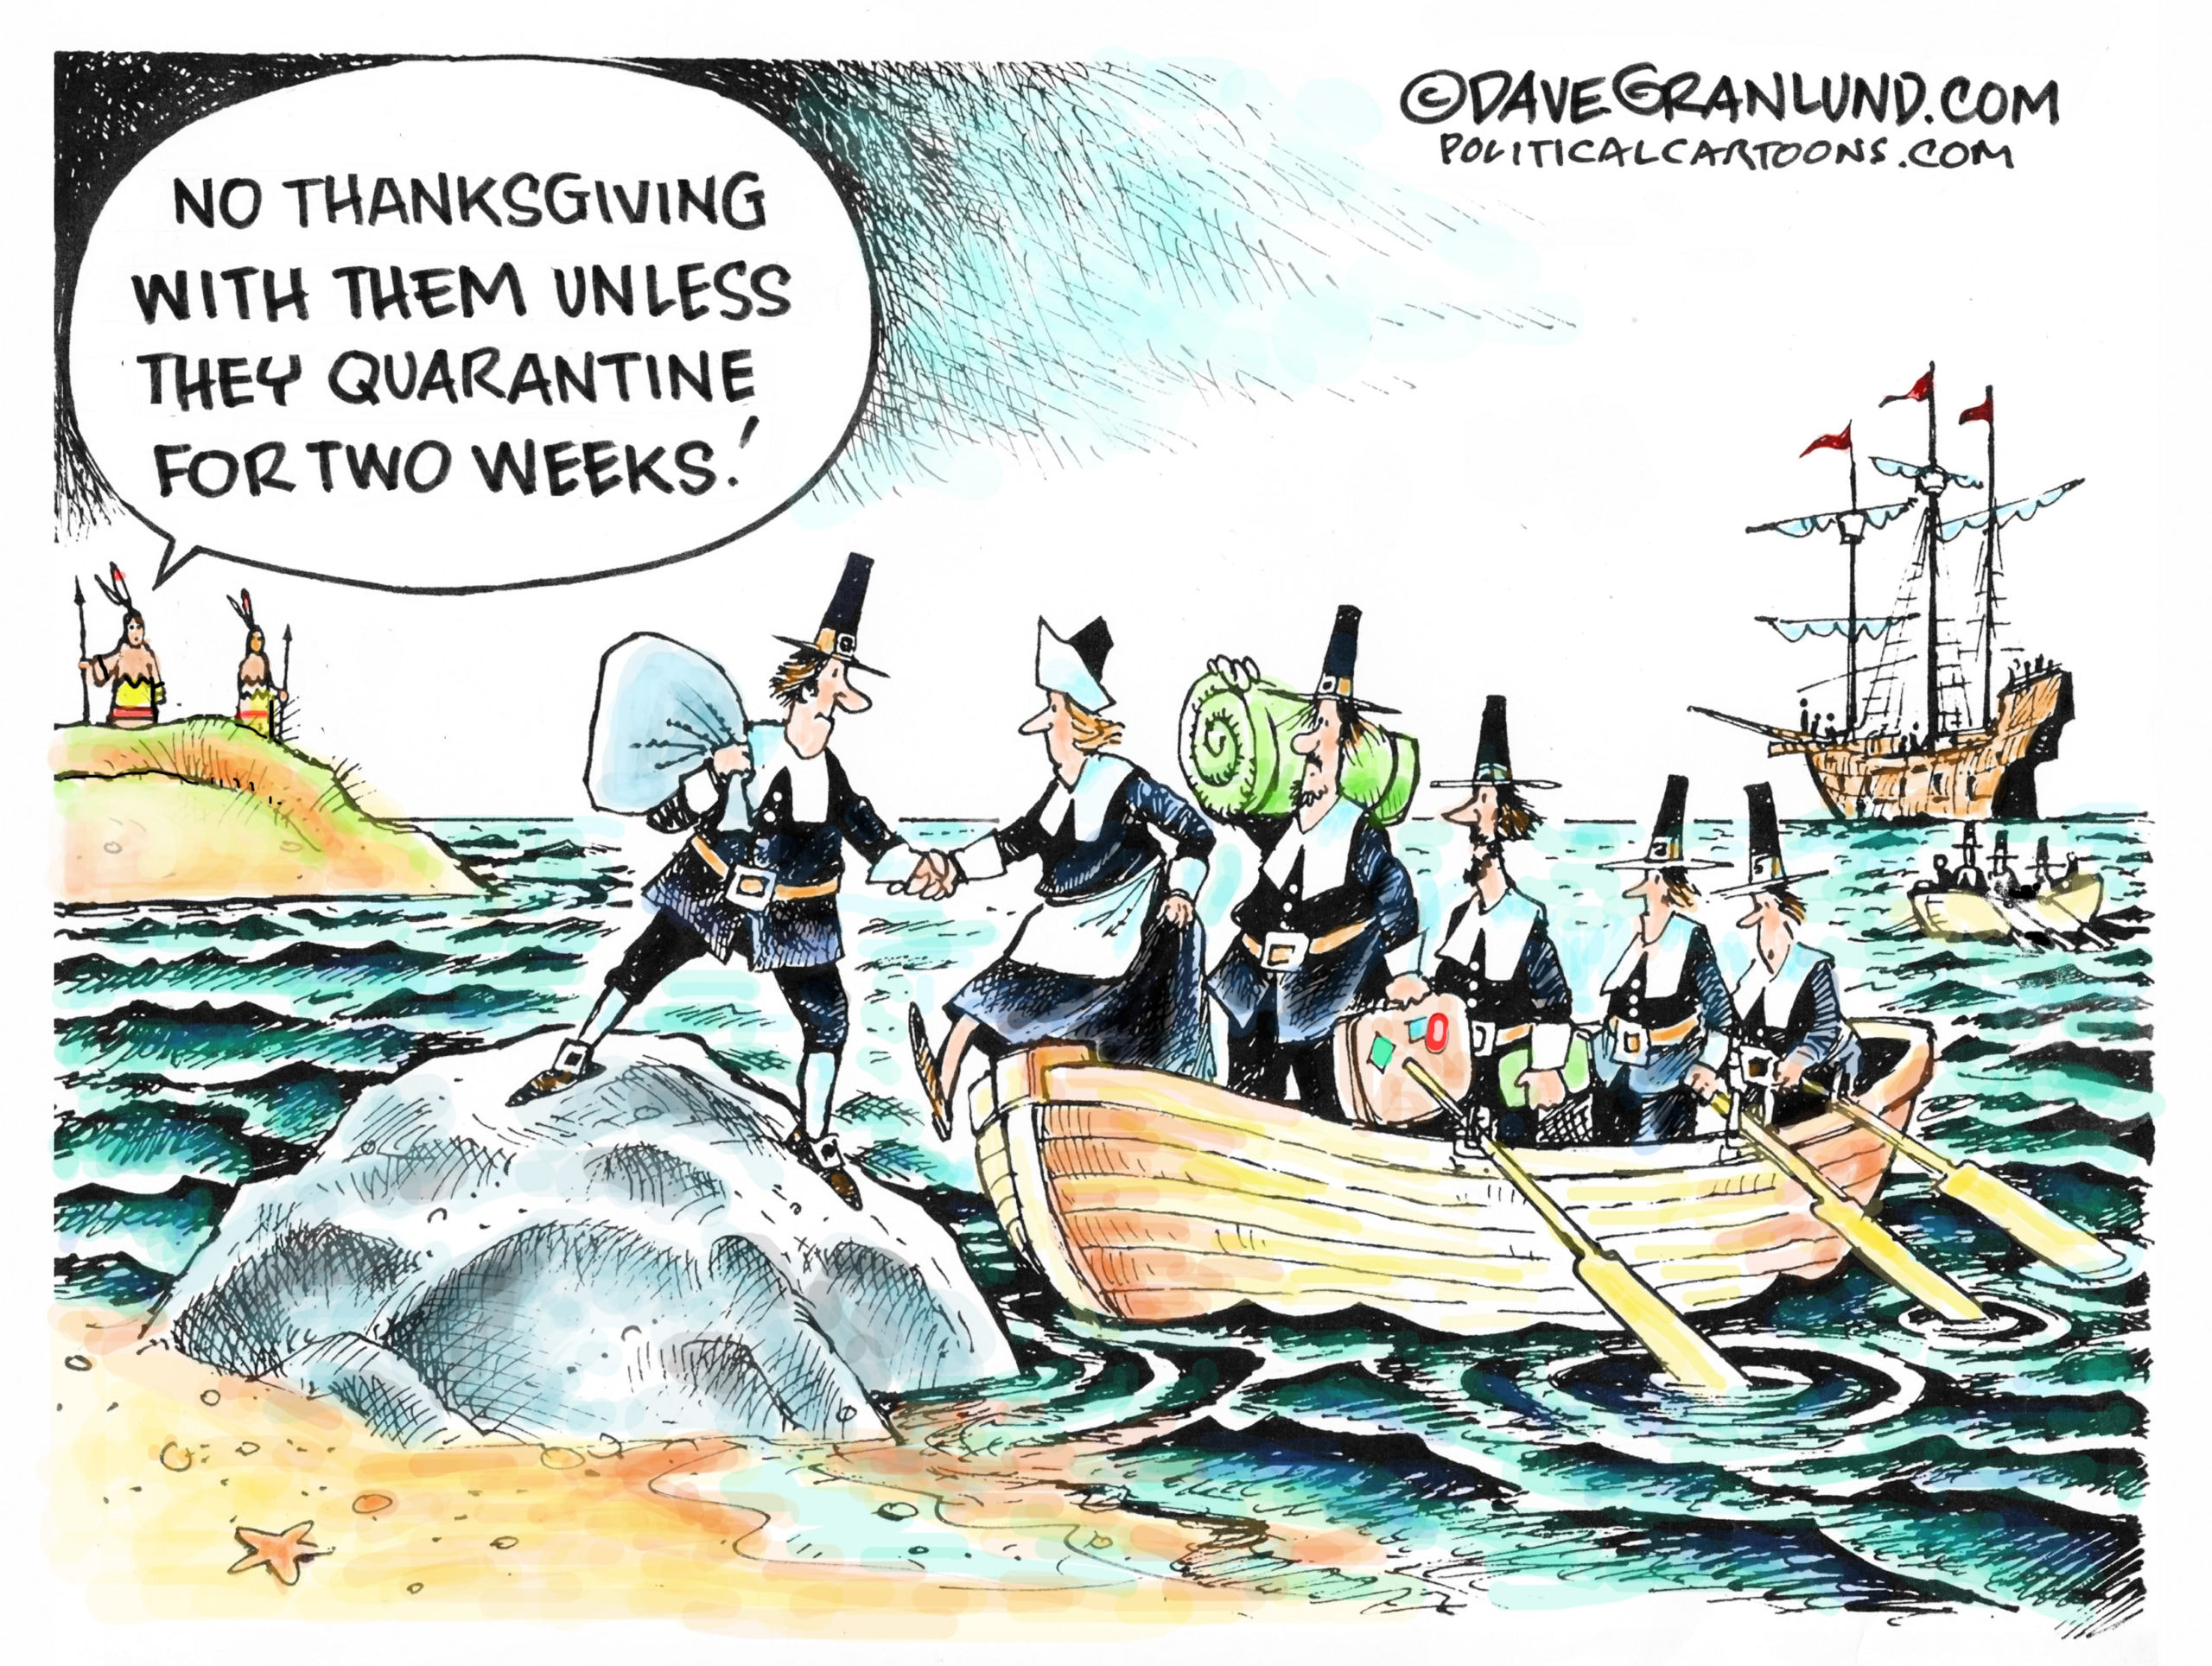 Pilgrims come off of their boat and are told to quarantine